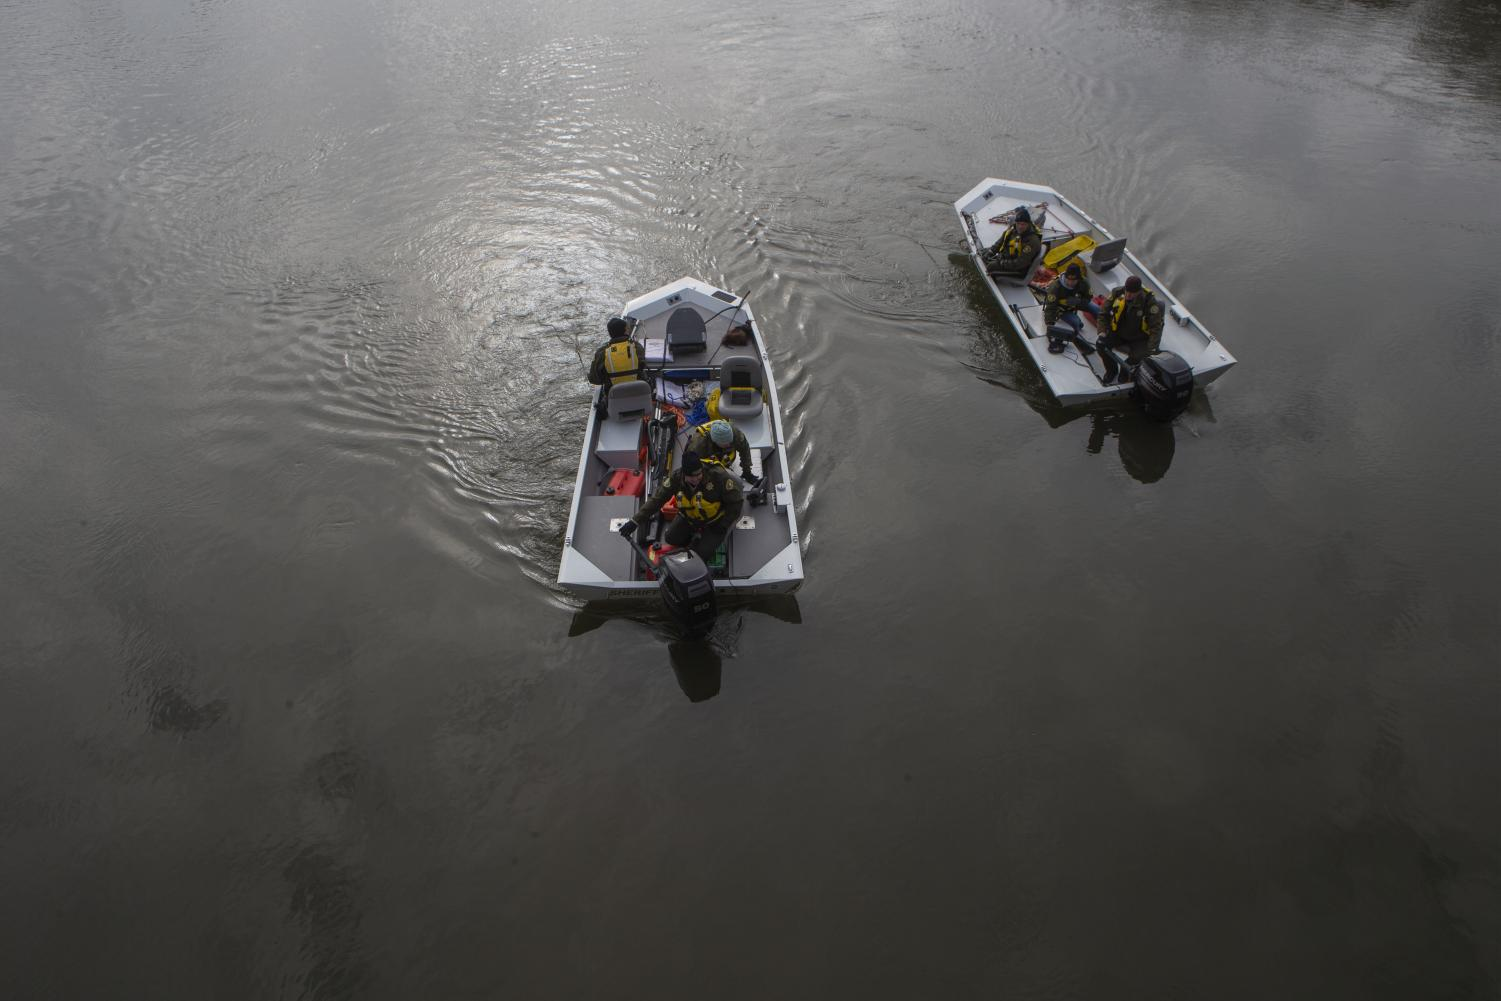 Sheriffs drag the Iowa River in boats near the English and Philosophy Building on Thursday, Nov. 14, 2019. (Jenna Galligan/The Daily Iowan)